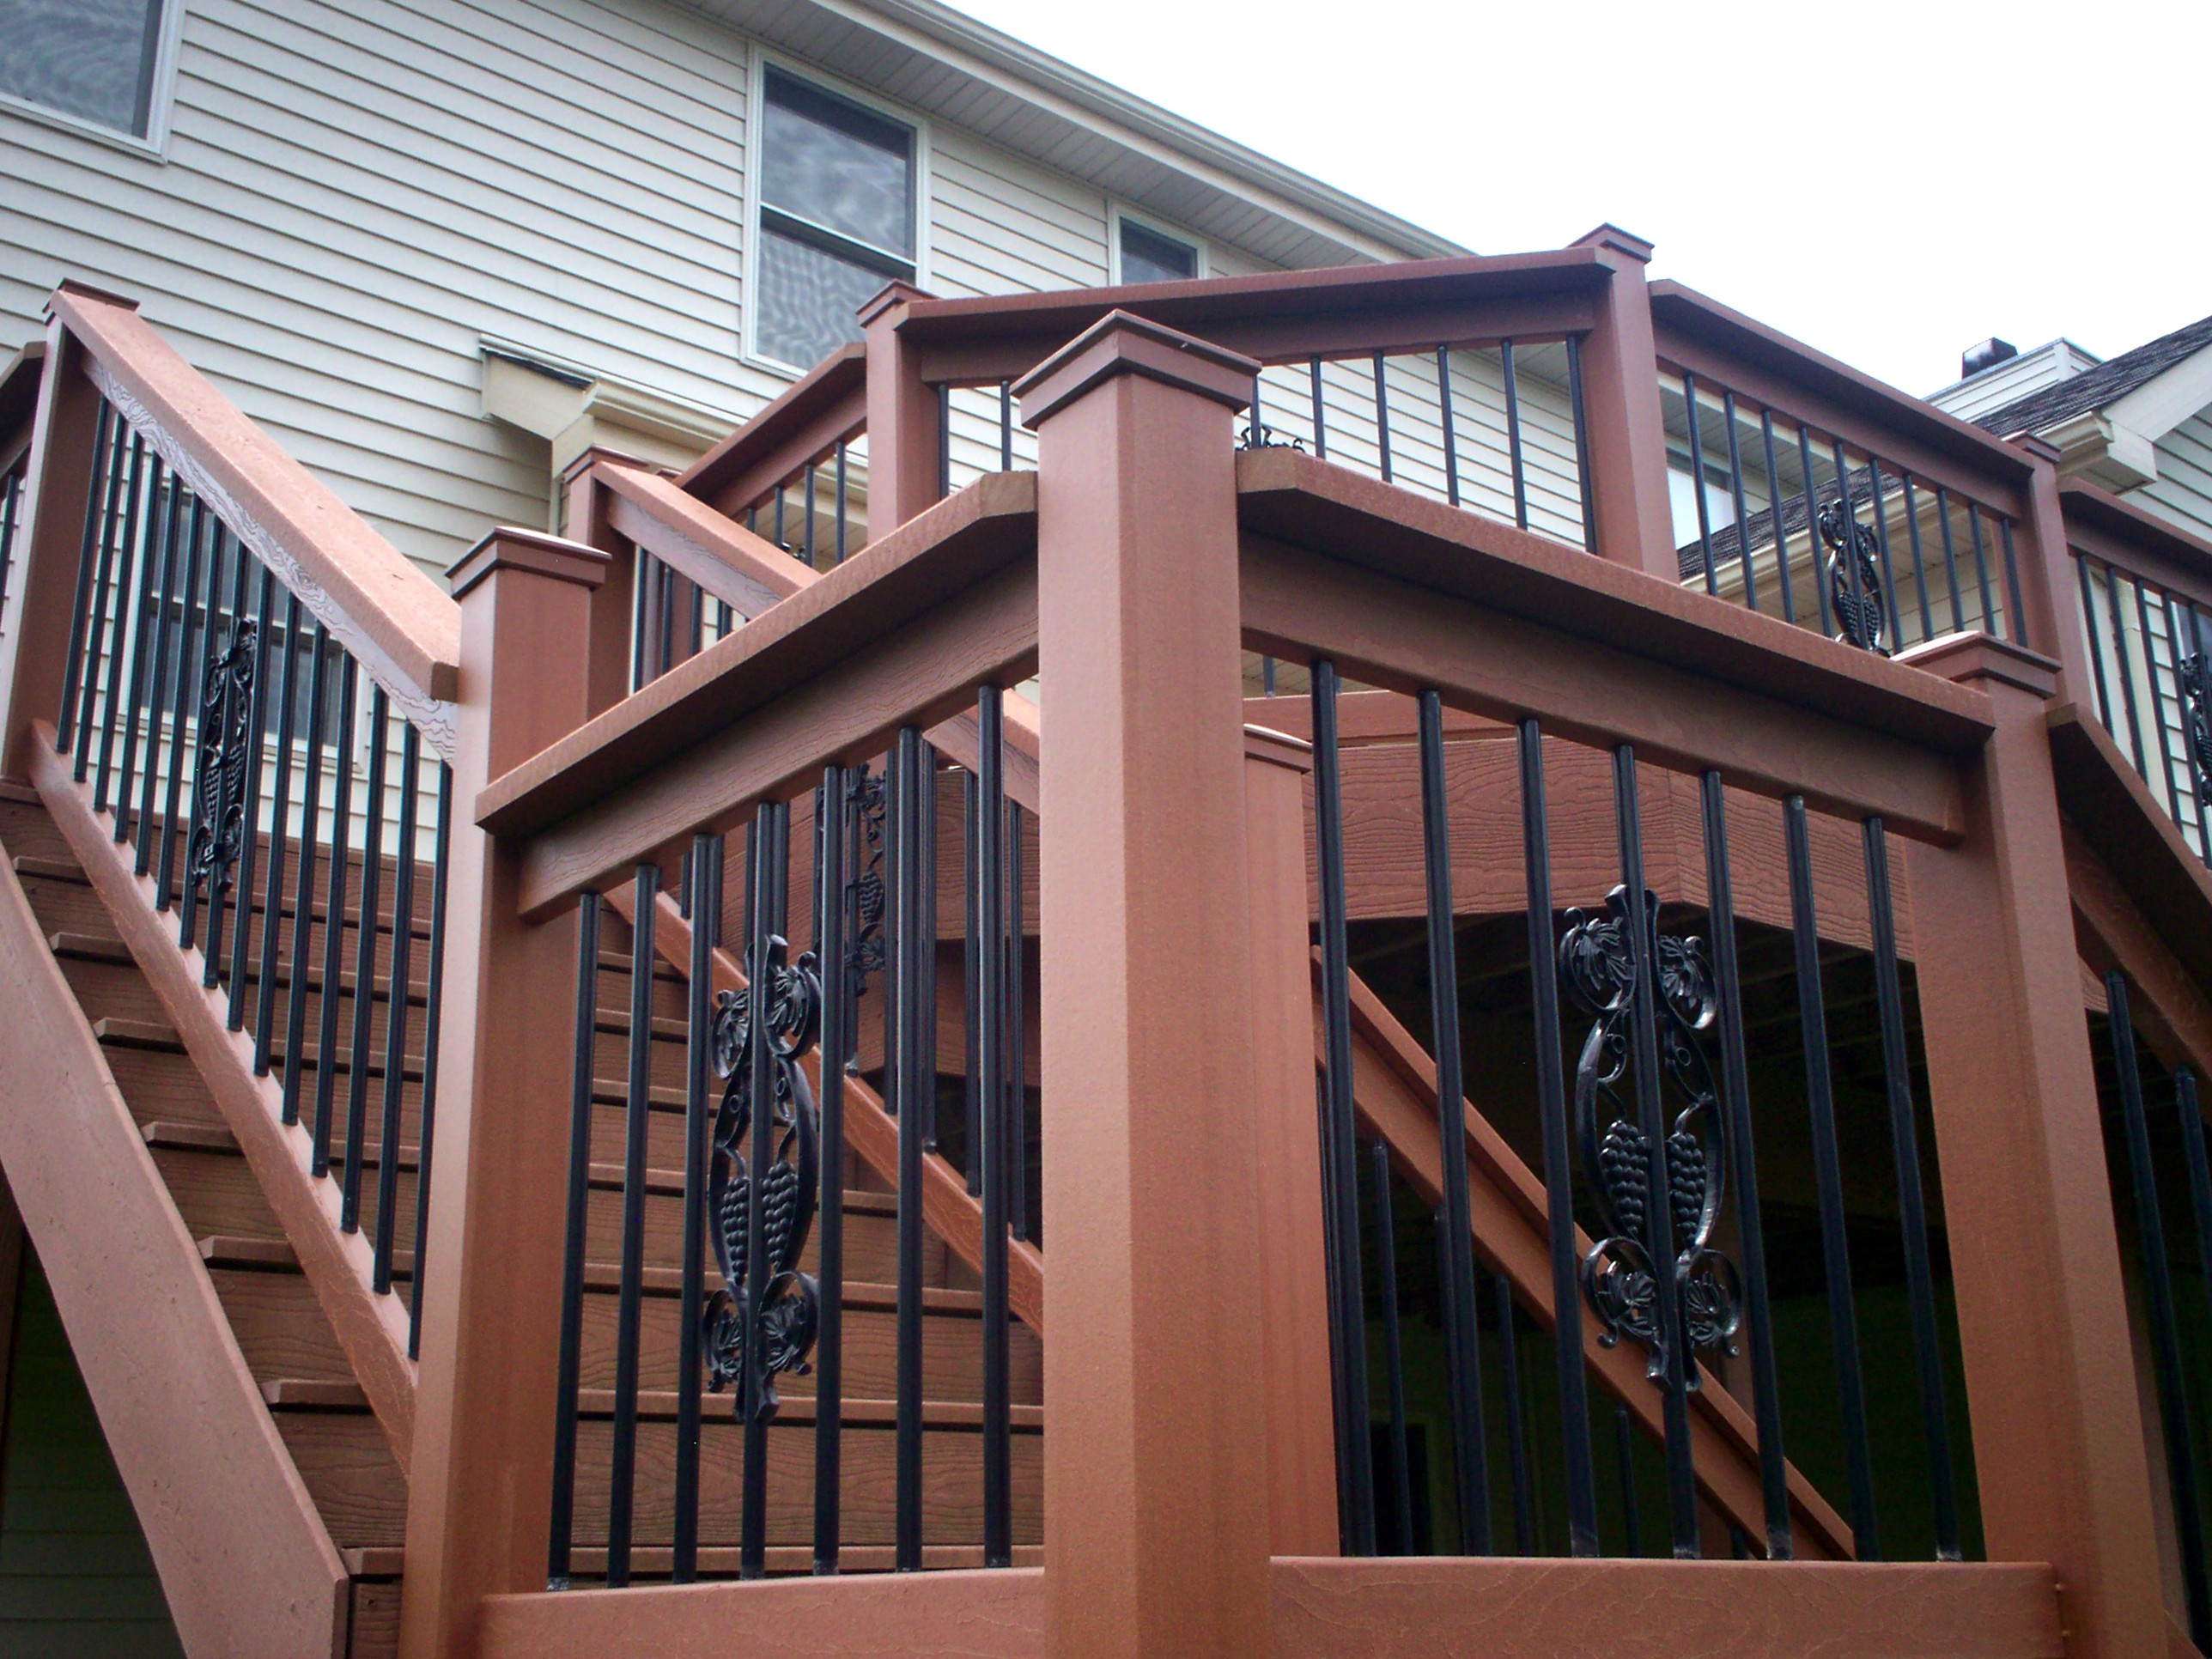 decorative deck railings. Composite Deck Railing with Decorative Balusters in St  Louis near Ballwin Decks and Express yourself a slideshow of